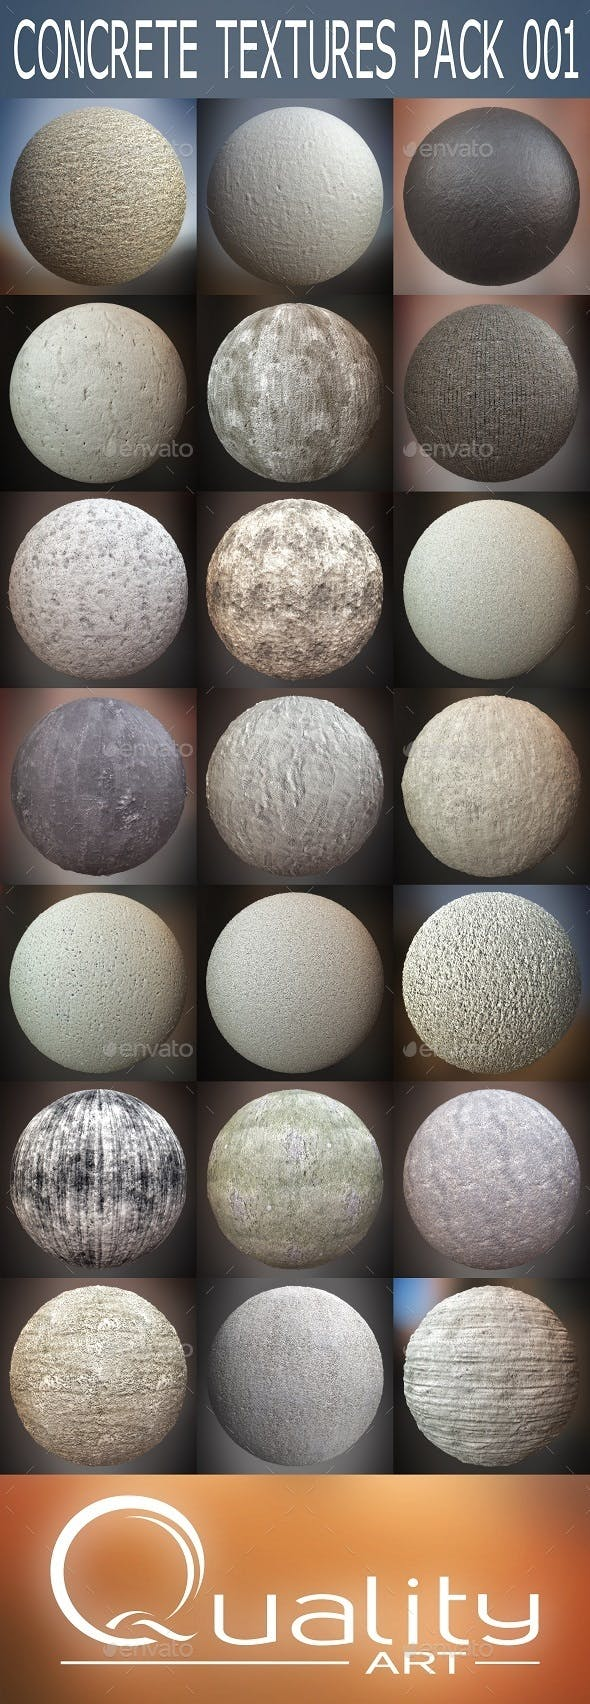 Concrete Textures Pack 001 - 3DOcean Item for Sale